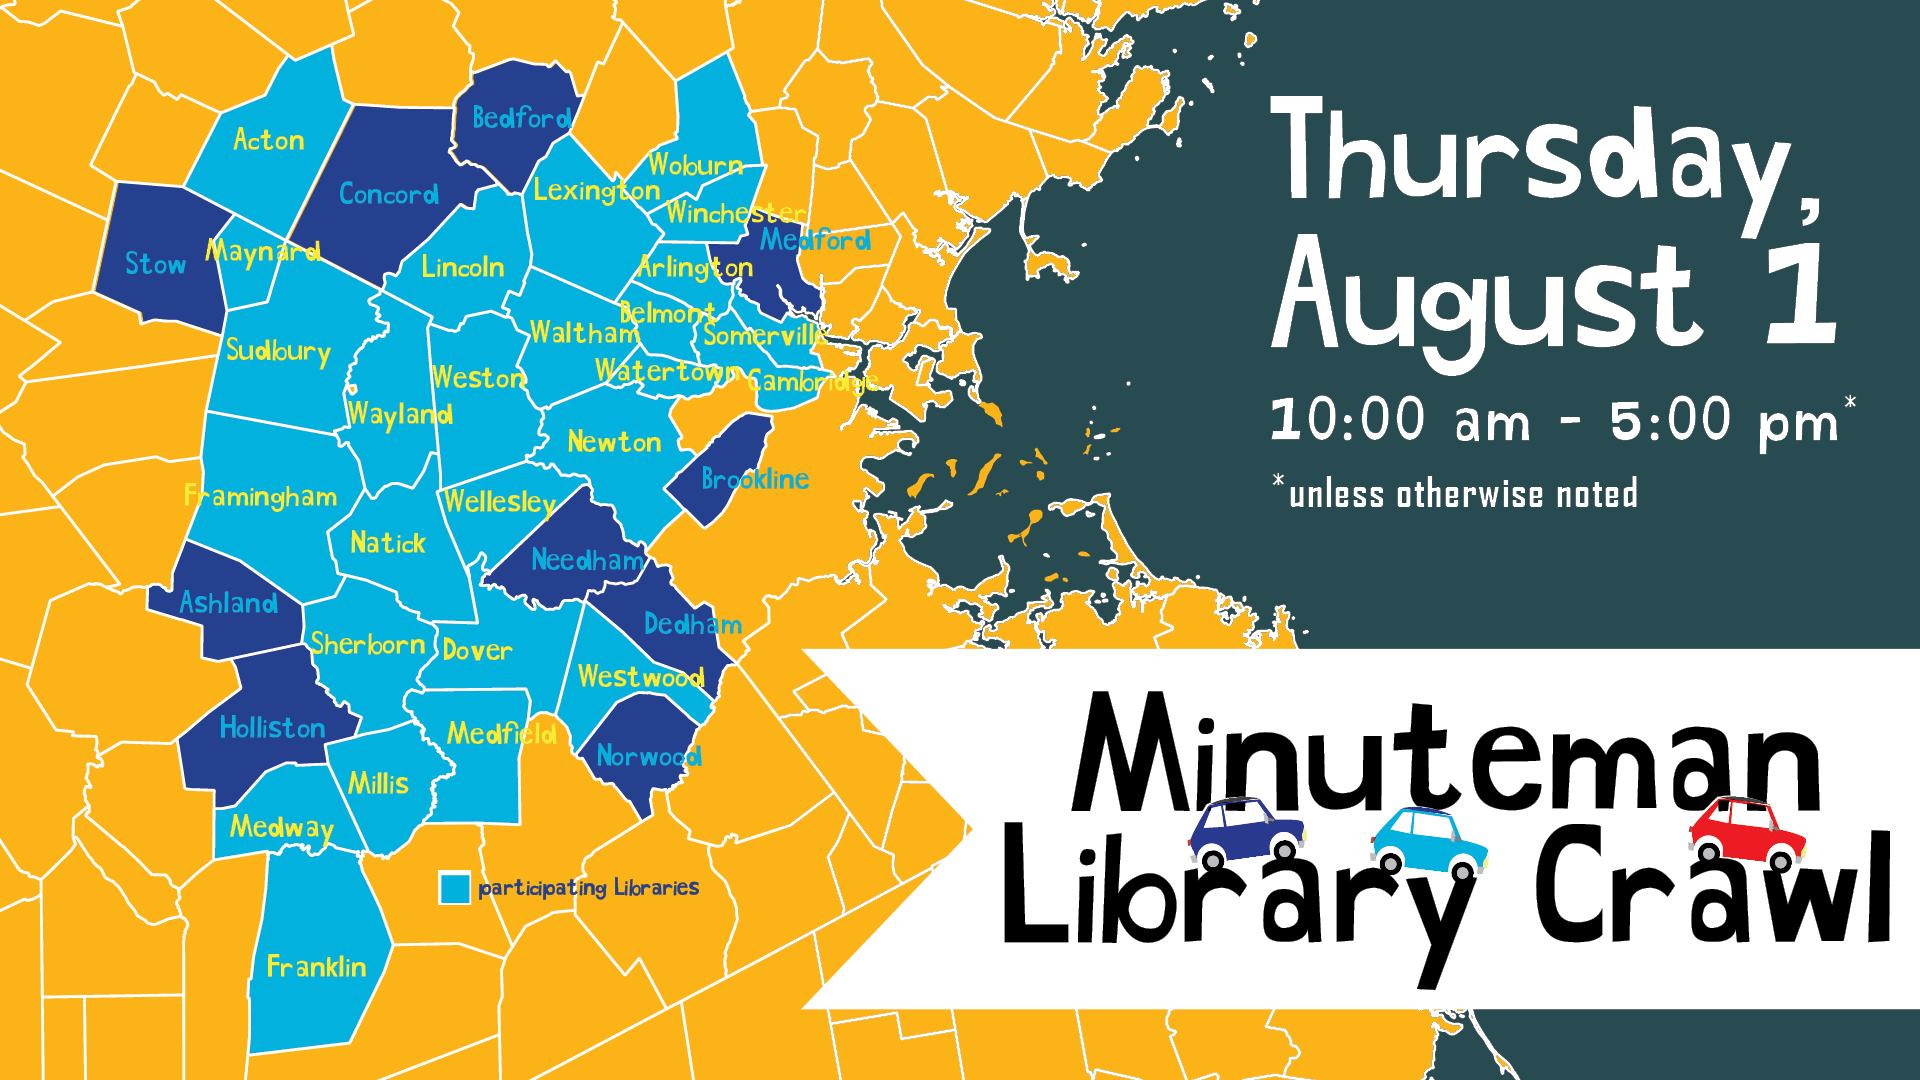 Map of Minuteman Library Network. Library Crawl Thursday August 1